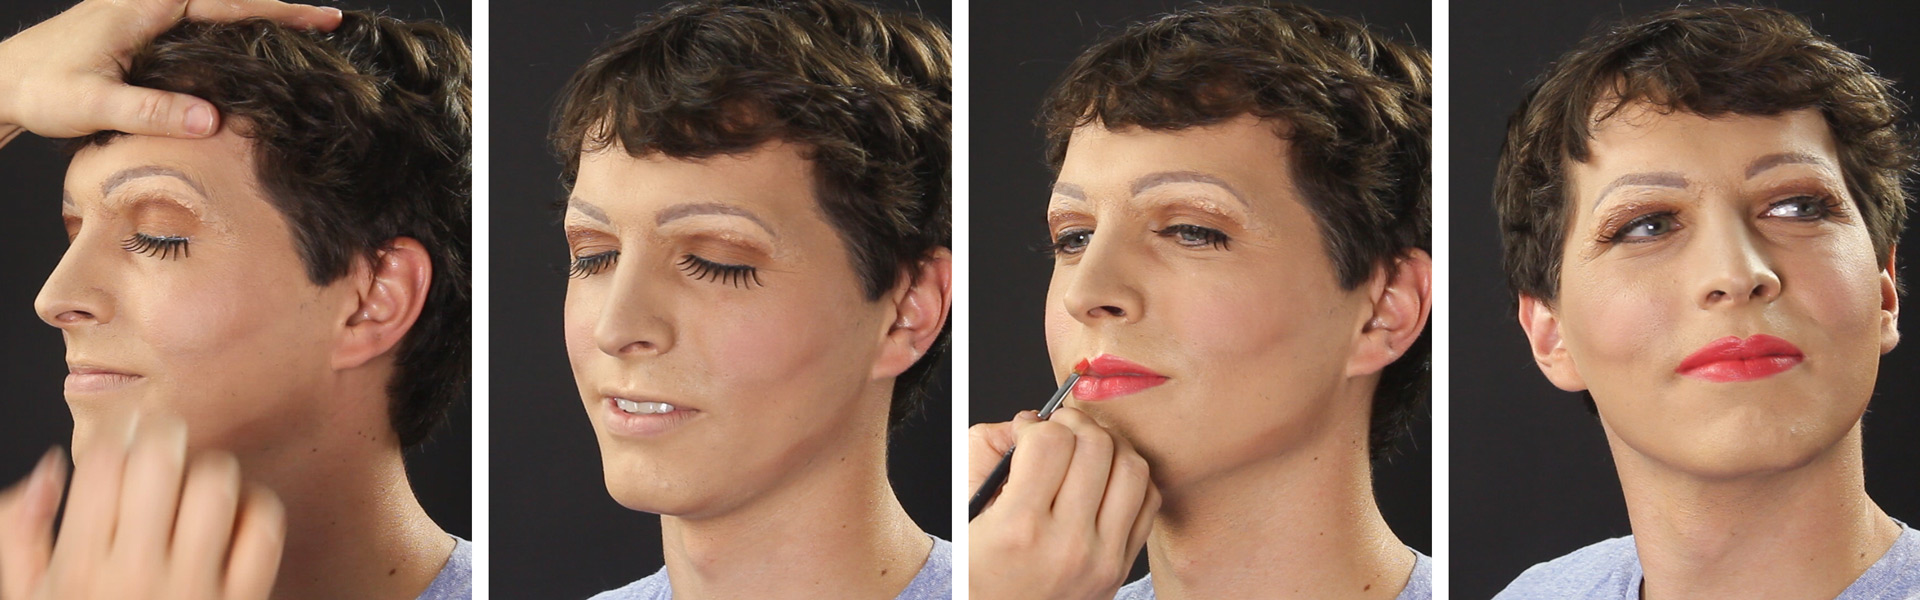 Male to female makeup tutorial wholesale halloween costumes blog finish with regular beauty makeup false lashes will make the look more authentic baditri Choice Image